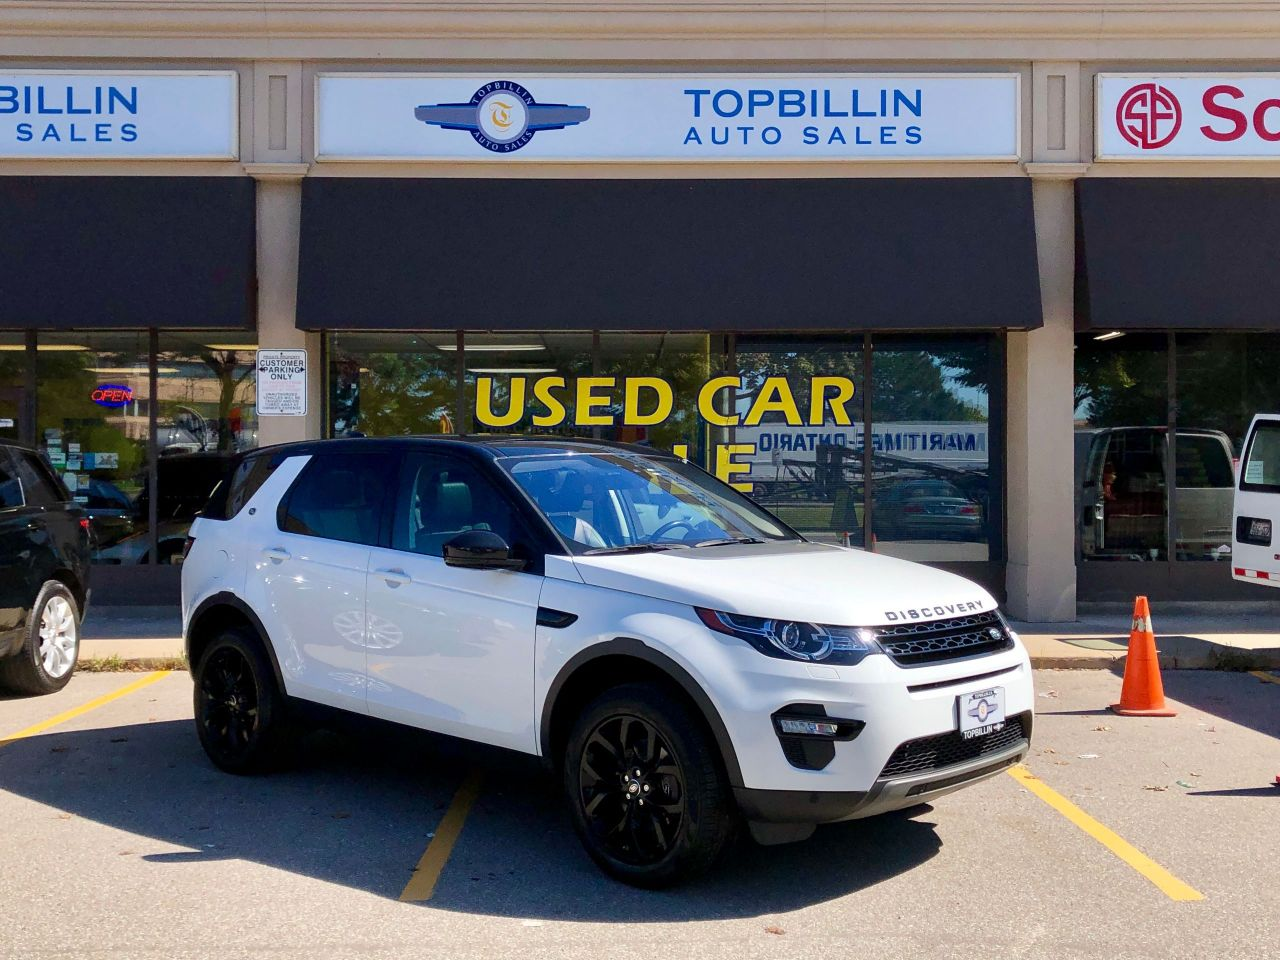 2017 Land Rover Discovery Sport HSE, Navi, Pano Roof, Blind Spot